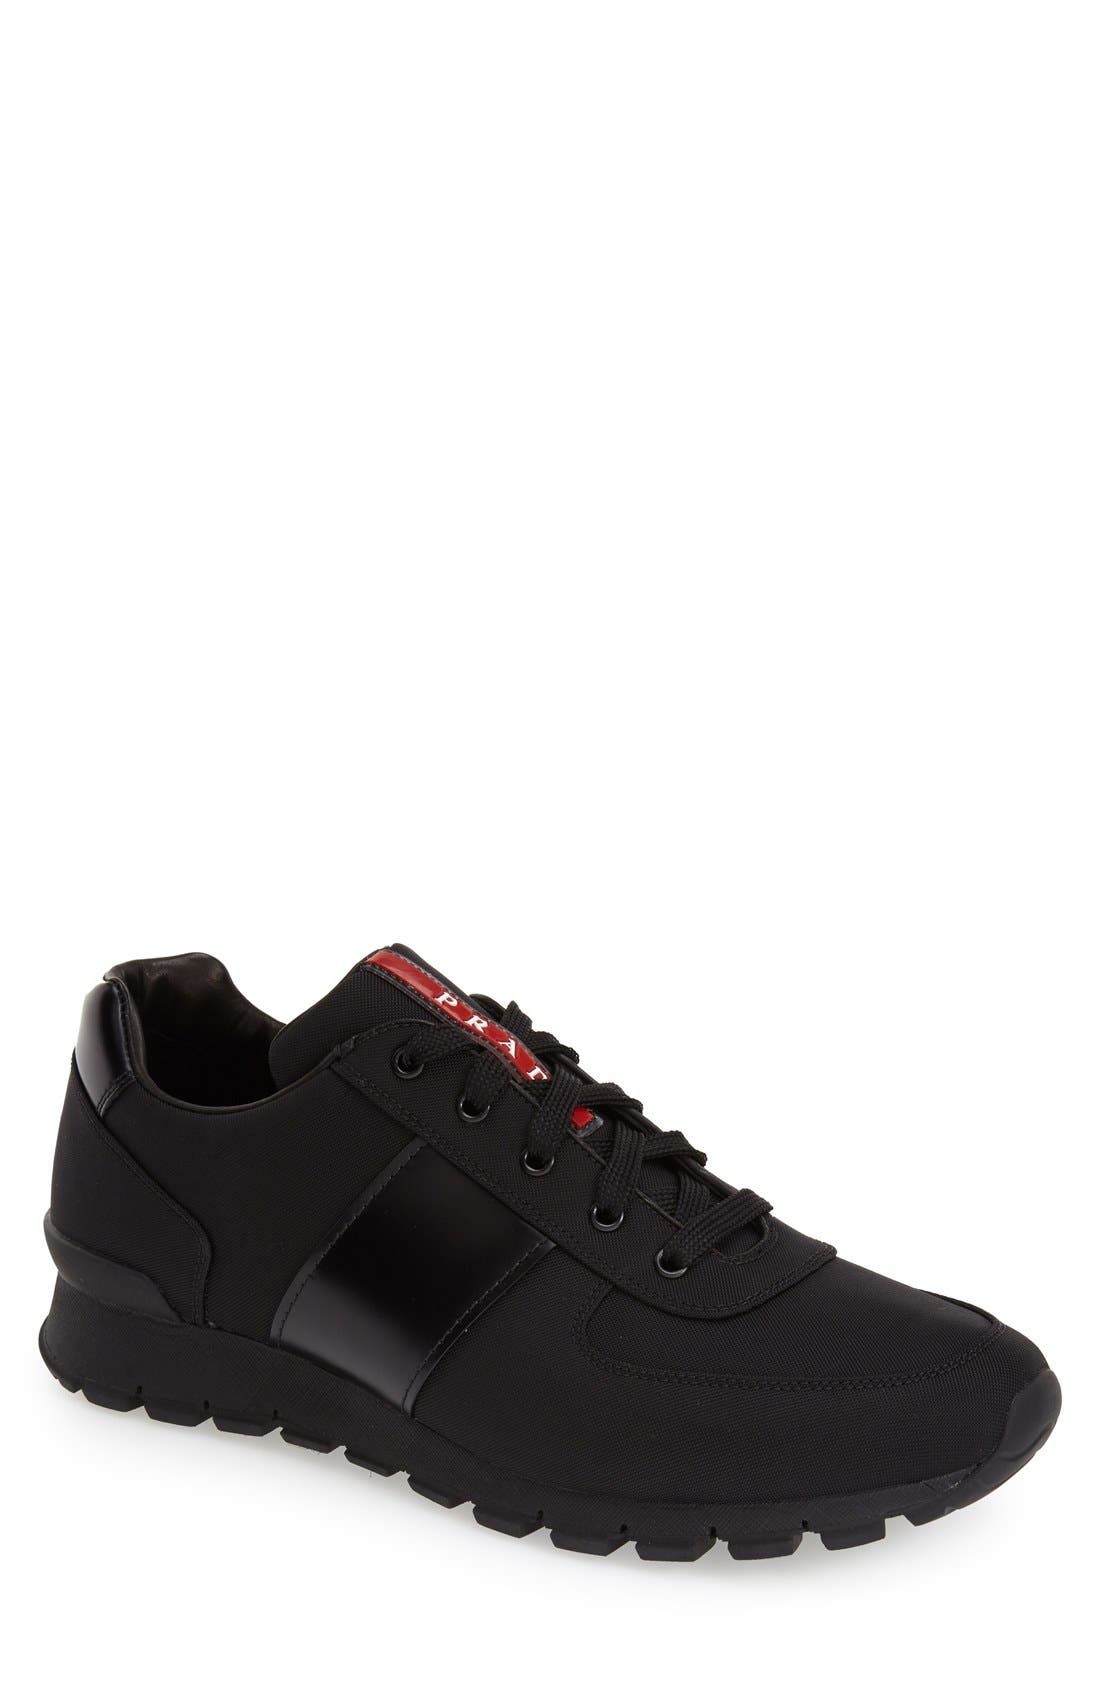 PRADA LINEA ROSSA,                             Runner Sneaker,                             Main thumbnail 1, color,                             001